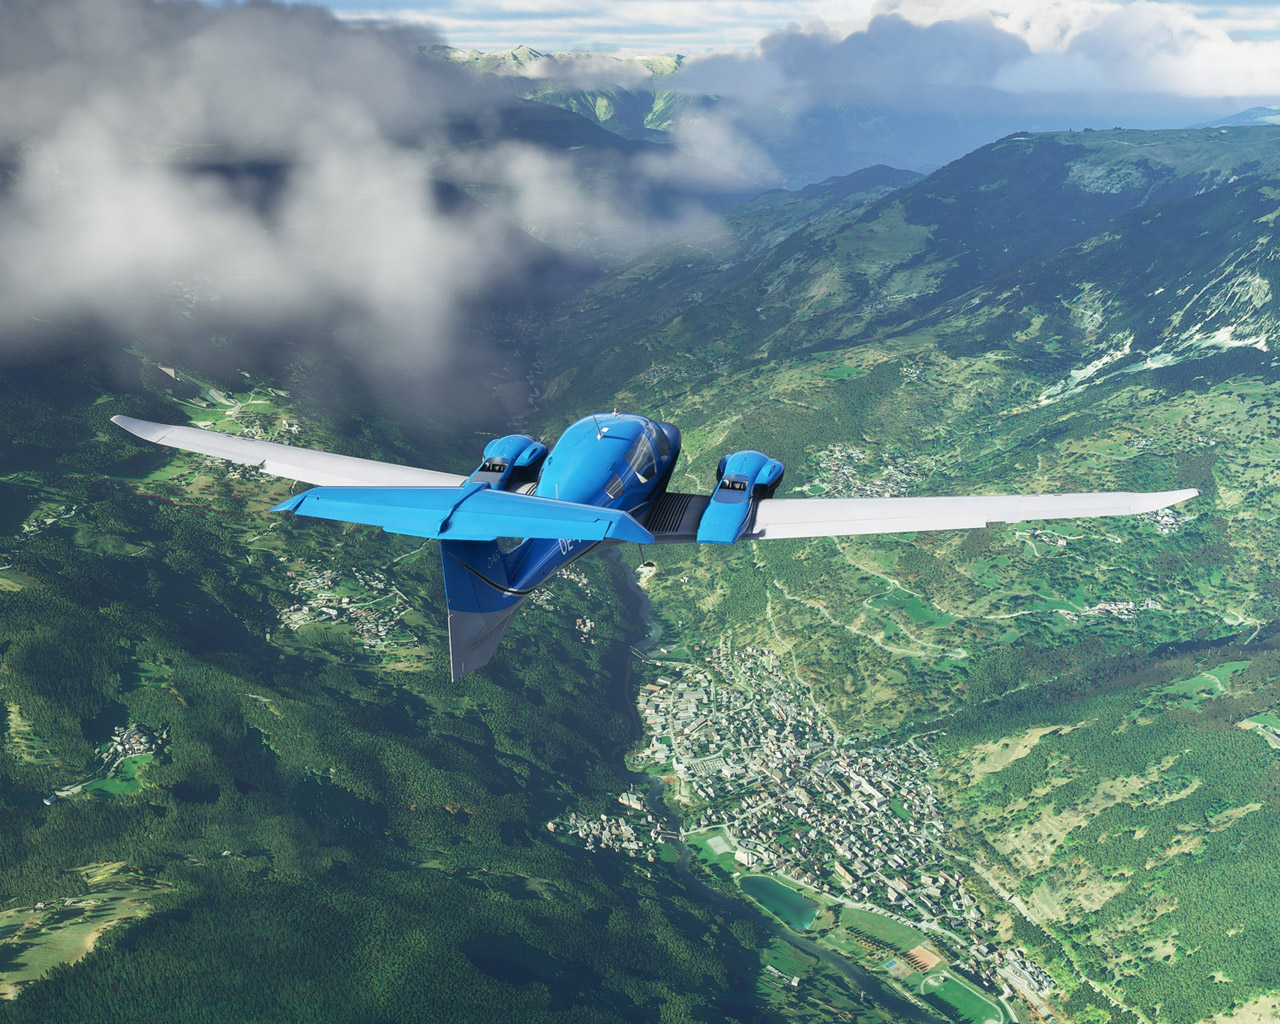 Microsoft Flight Simulator (2020) Wallpaper in 1280x1024